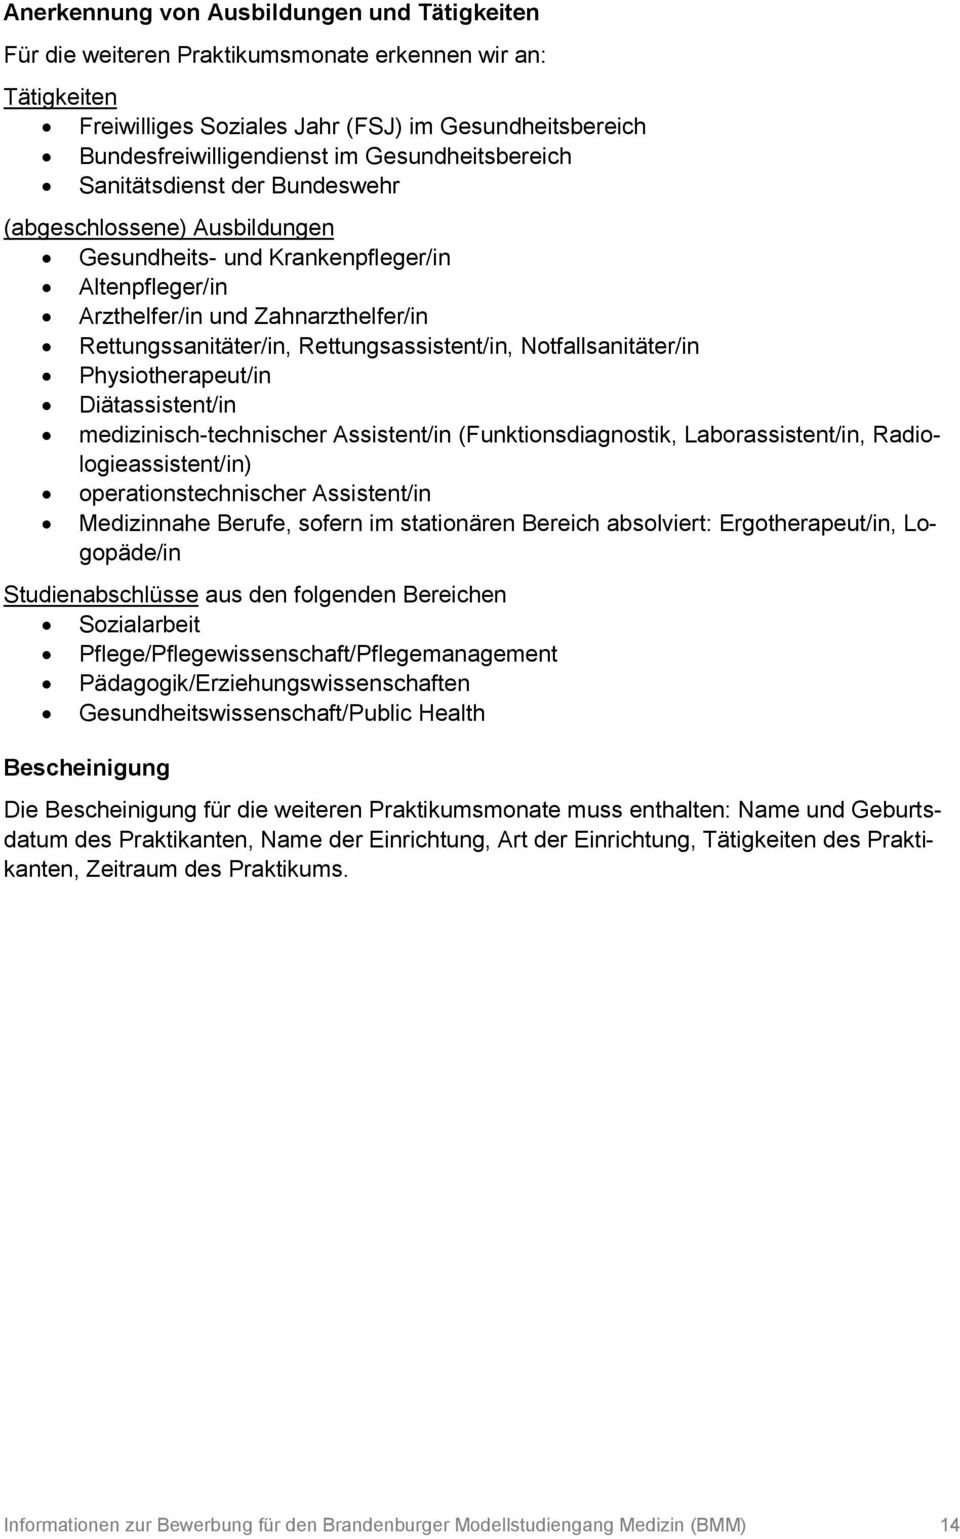 Rettungsassistent/in, Notfallsanitäter/in Physiotherapeut/in Diätassistent/in medizinisch-technischer Assistent/in (Funktionsdiagnostik, Laborassistent/in, Radiologieassistent/in)